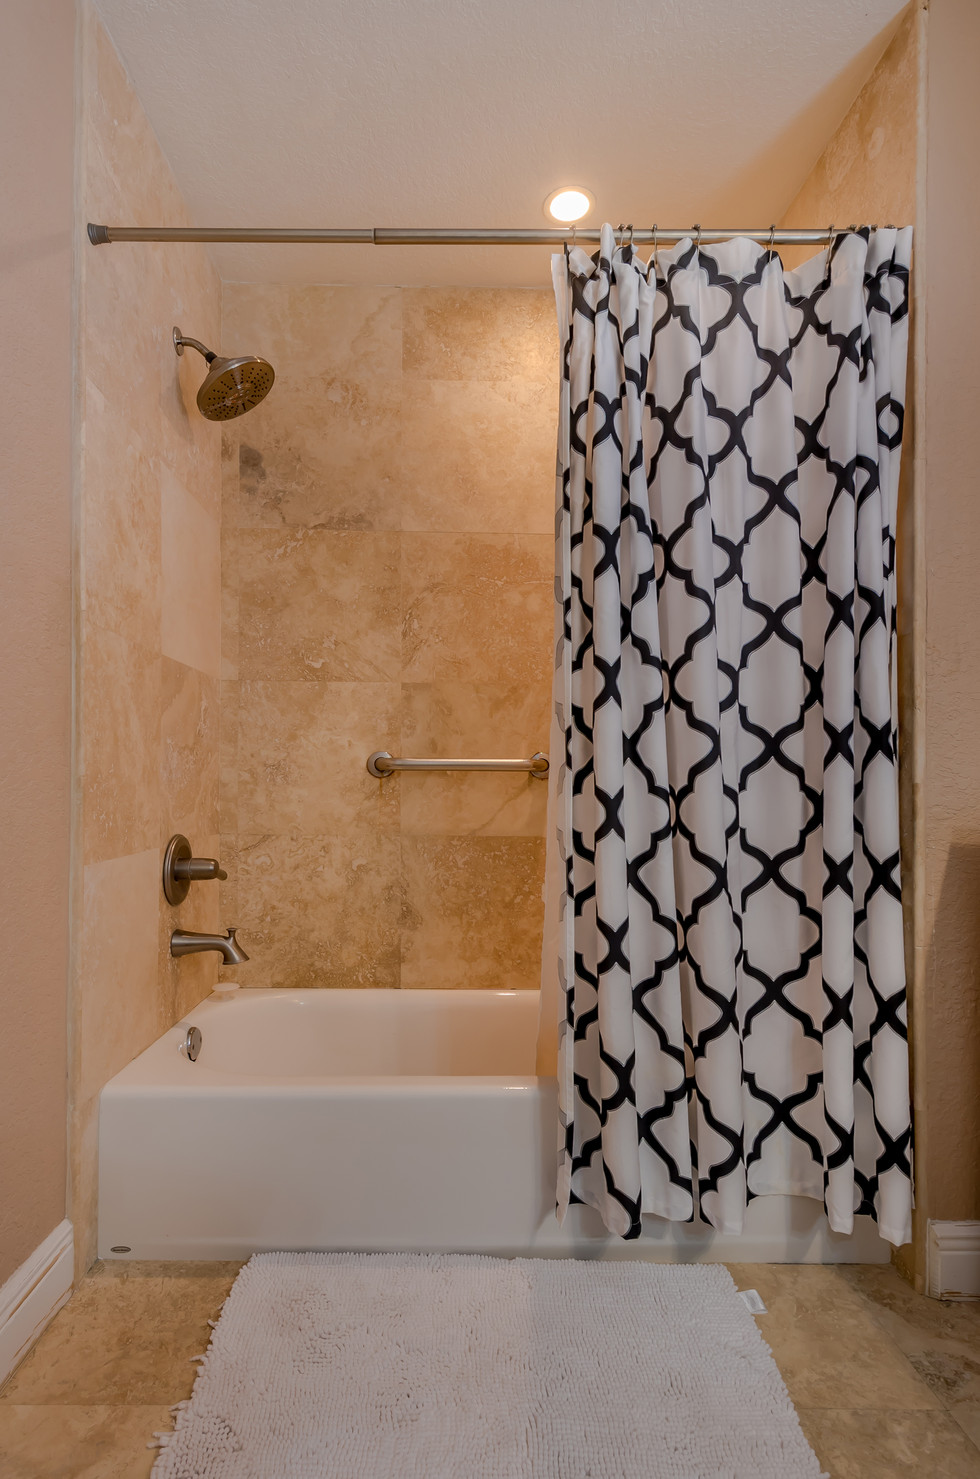 Master Bathroom Remodel Featuring Tub/Shower Combo & Excellent Tile Work